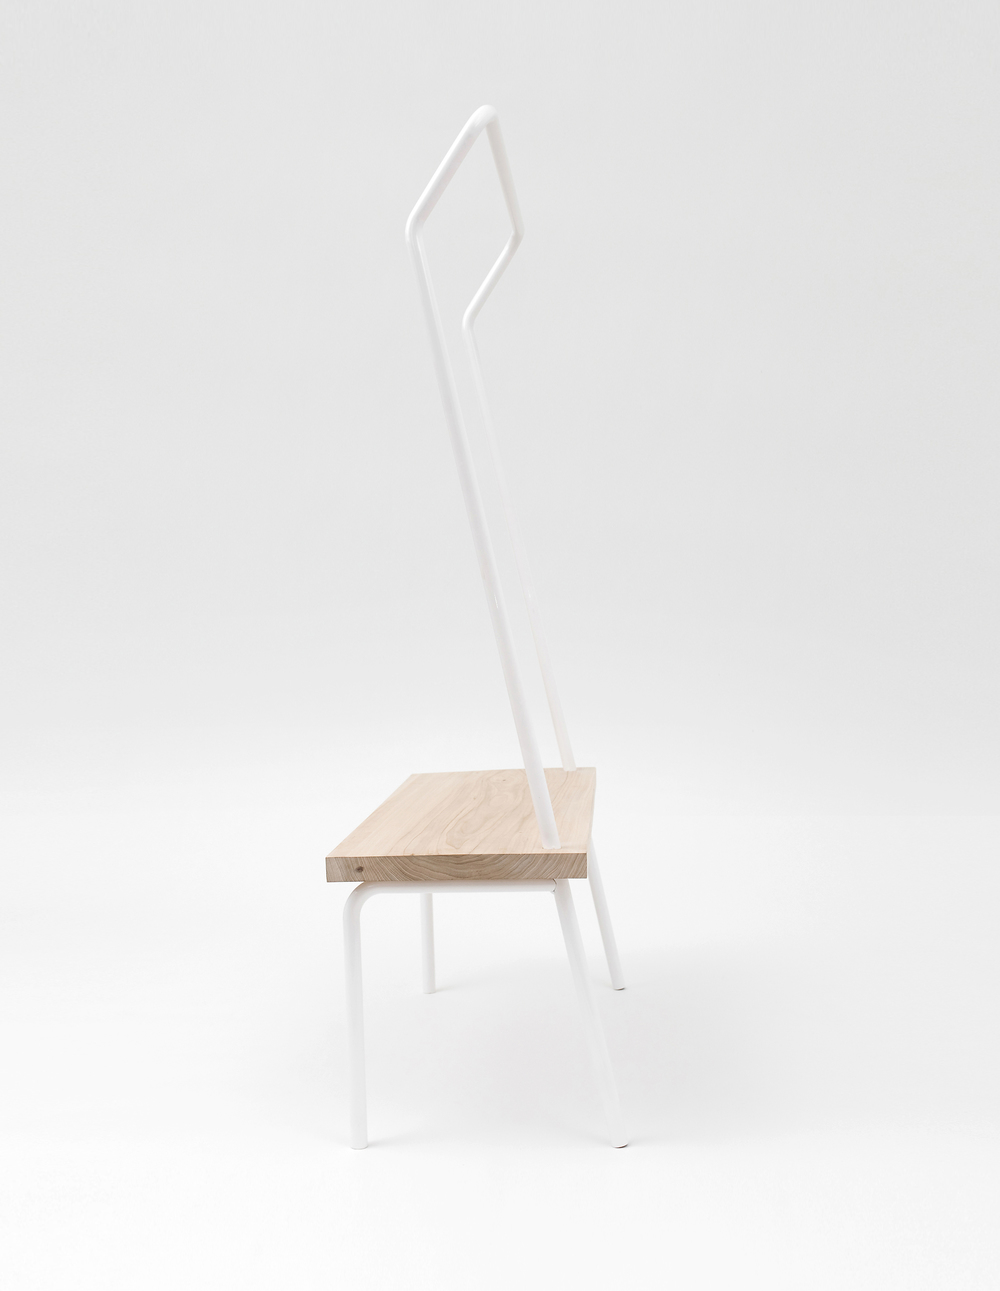 Thom Fougere Bench Rack